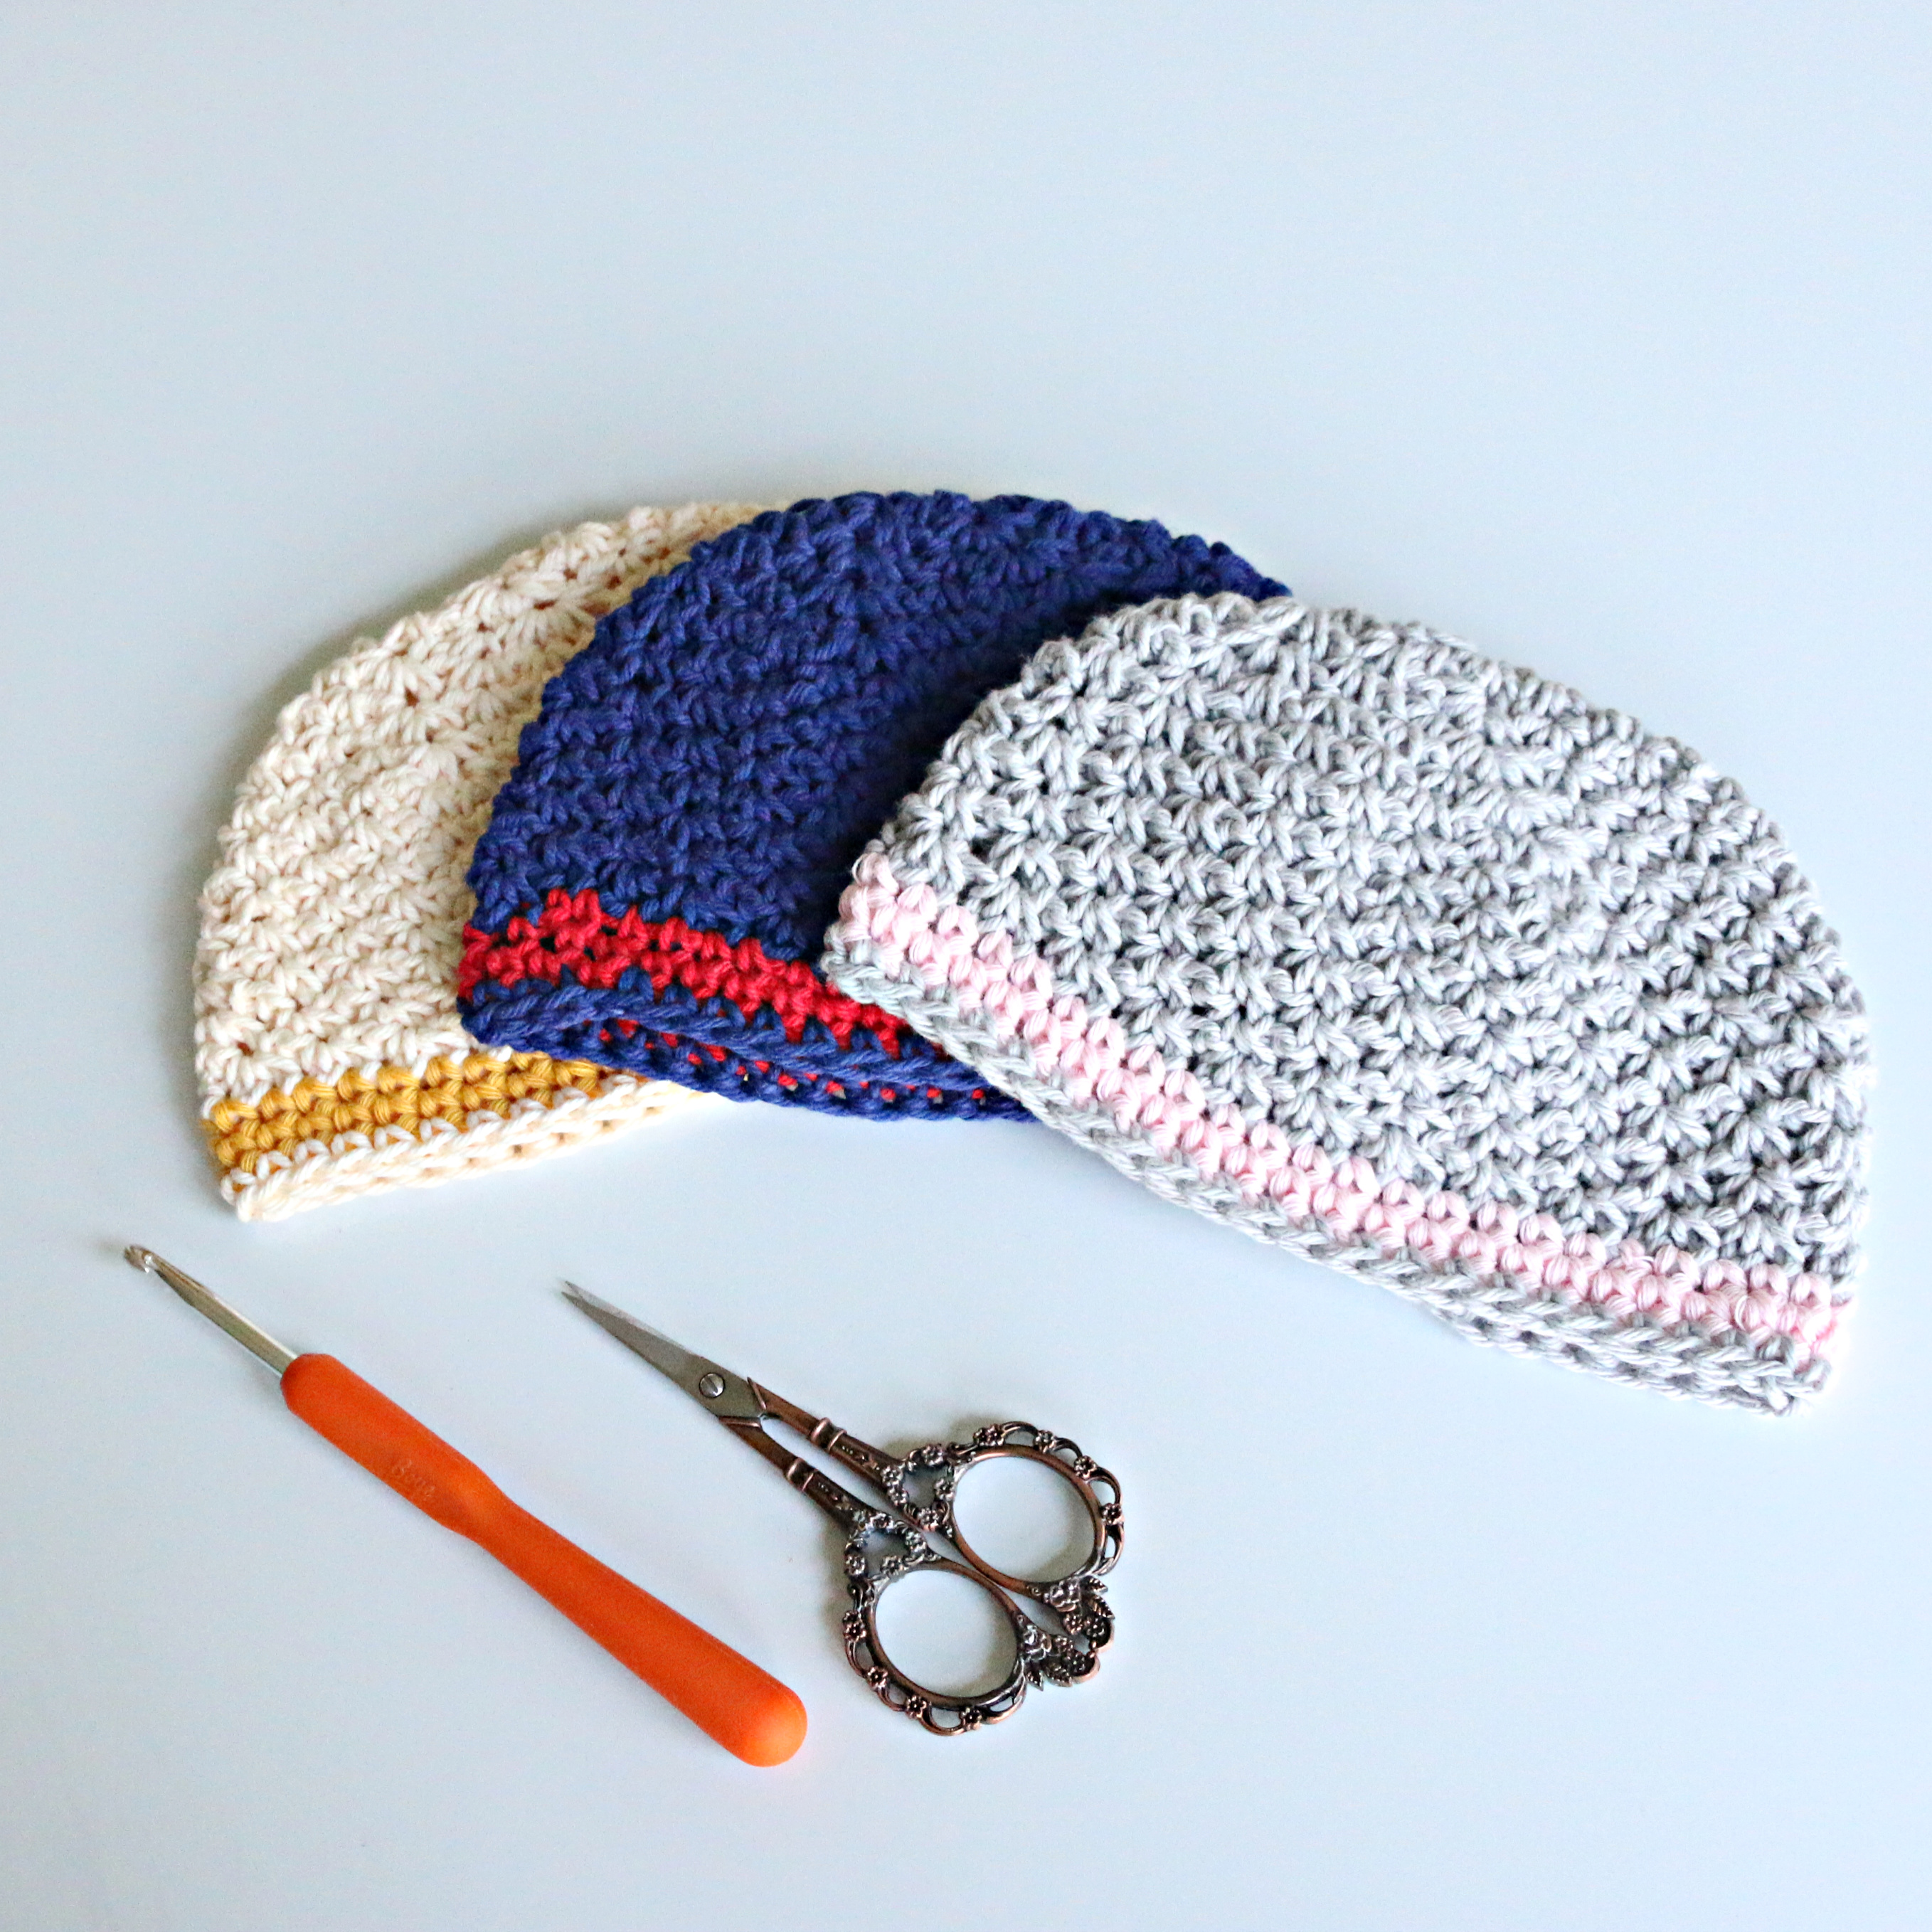 Single Crochet V Stitch Baby Hat Tutorial